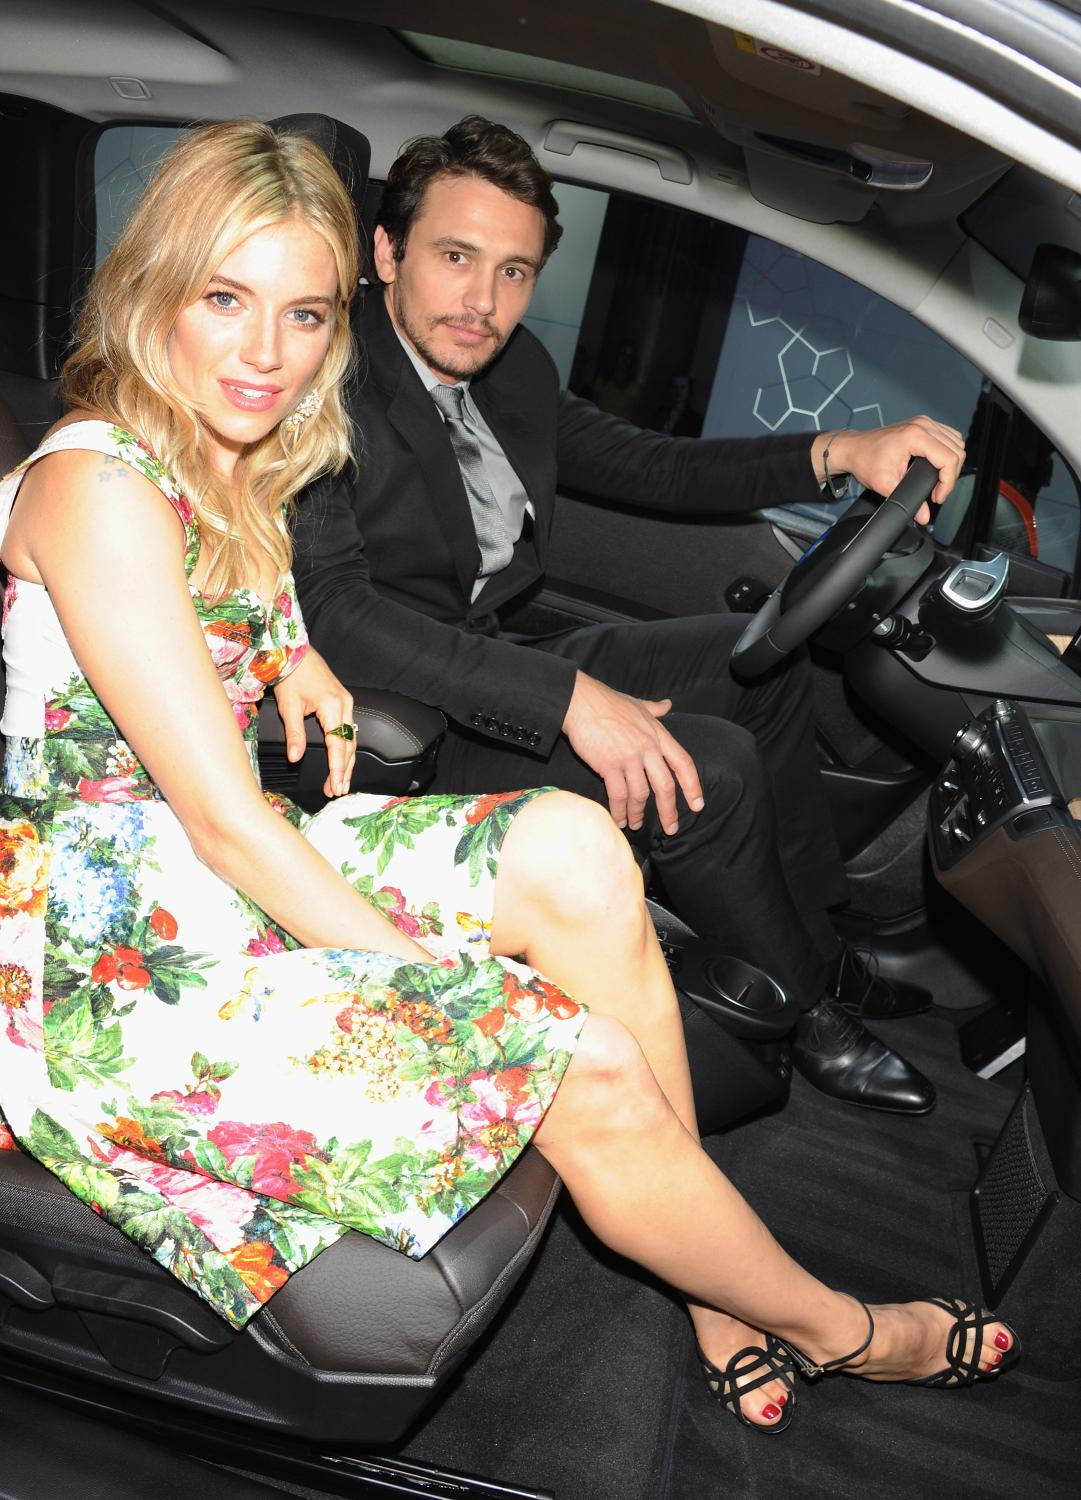 Green Jeep Wrangler >> BMW i3 Welcomed by Sienna Miller and James Franco in London - autoevolution